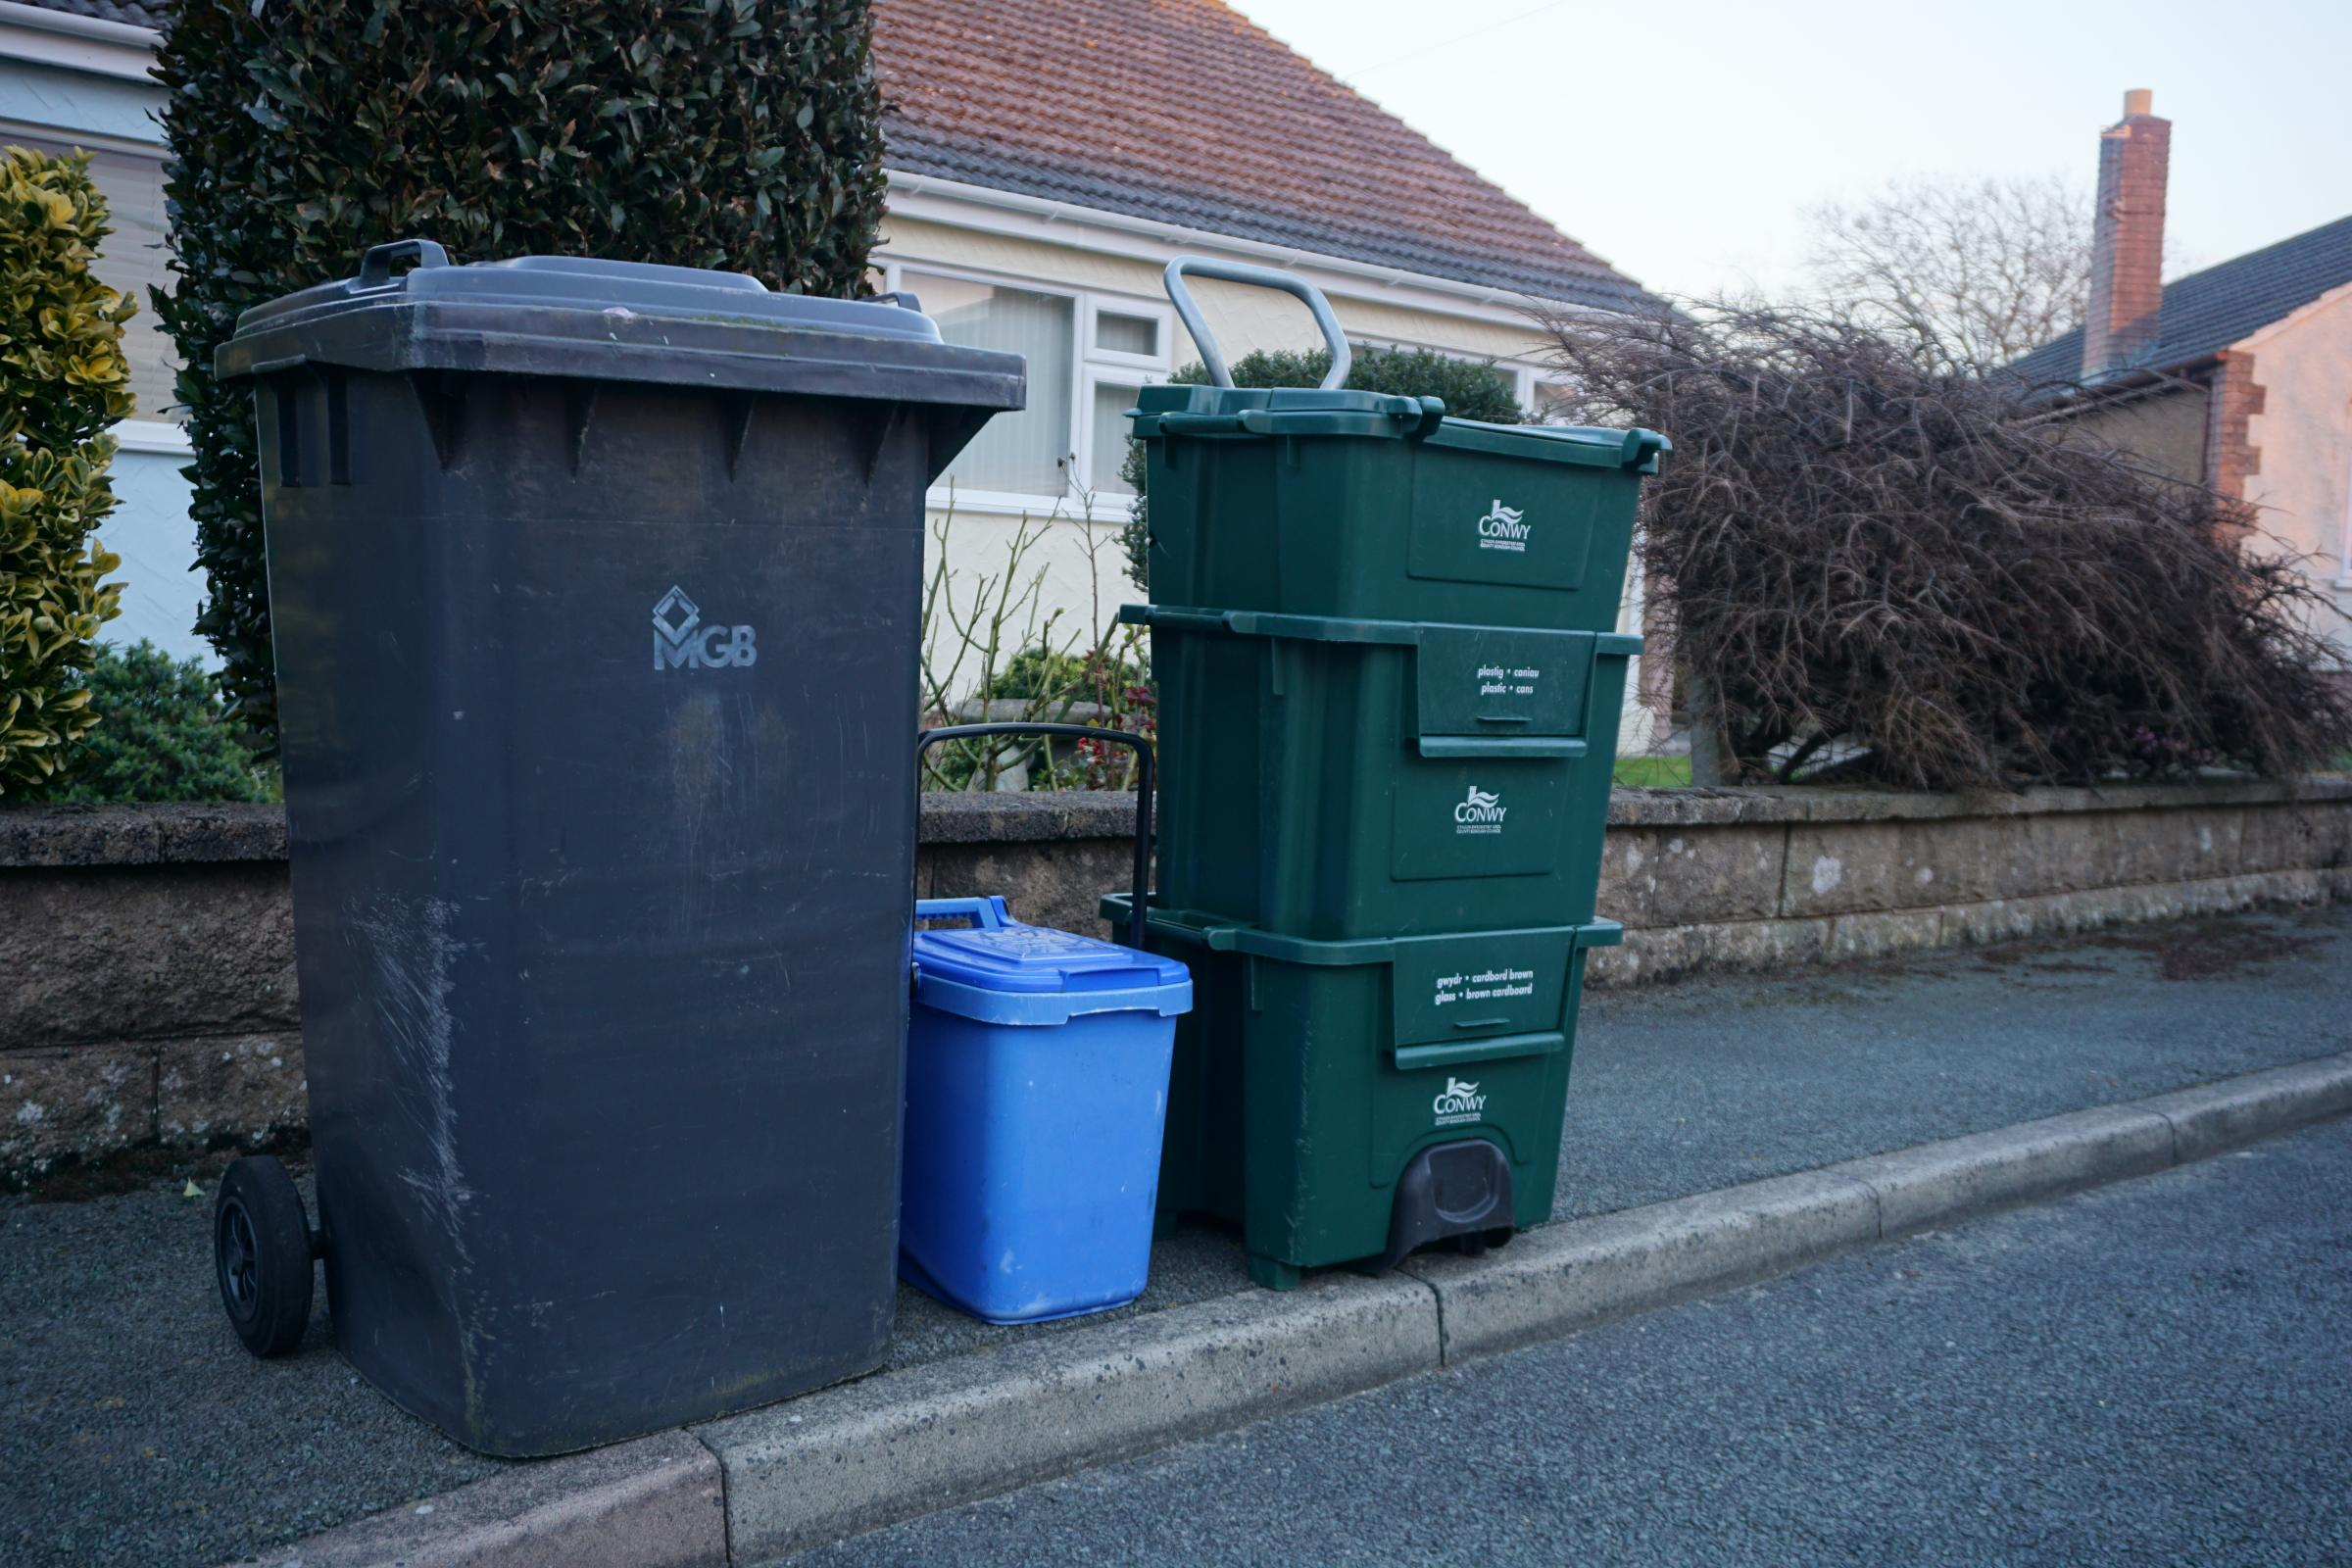 Conwy county bins. Picture: Patrick Glover